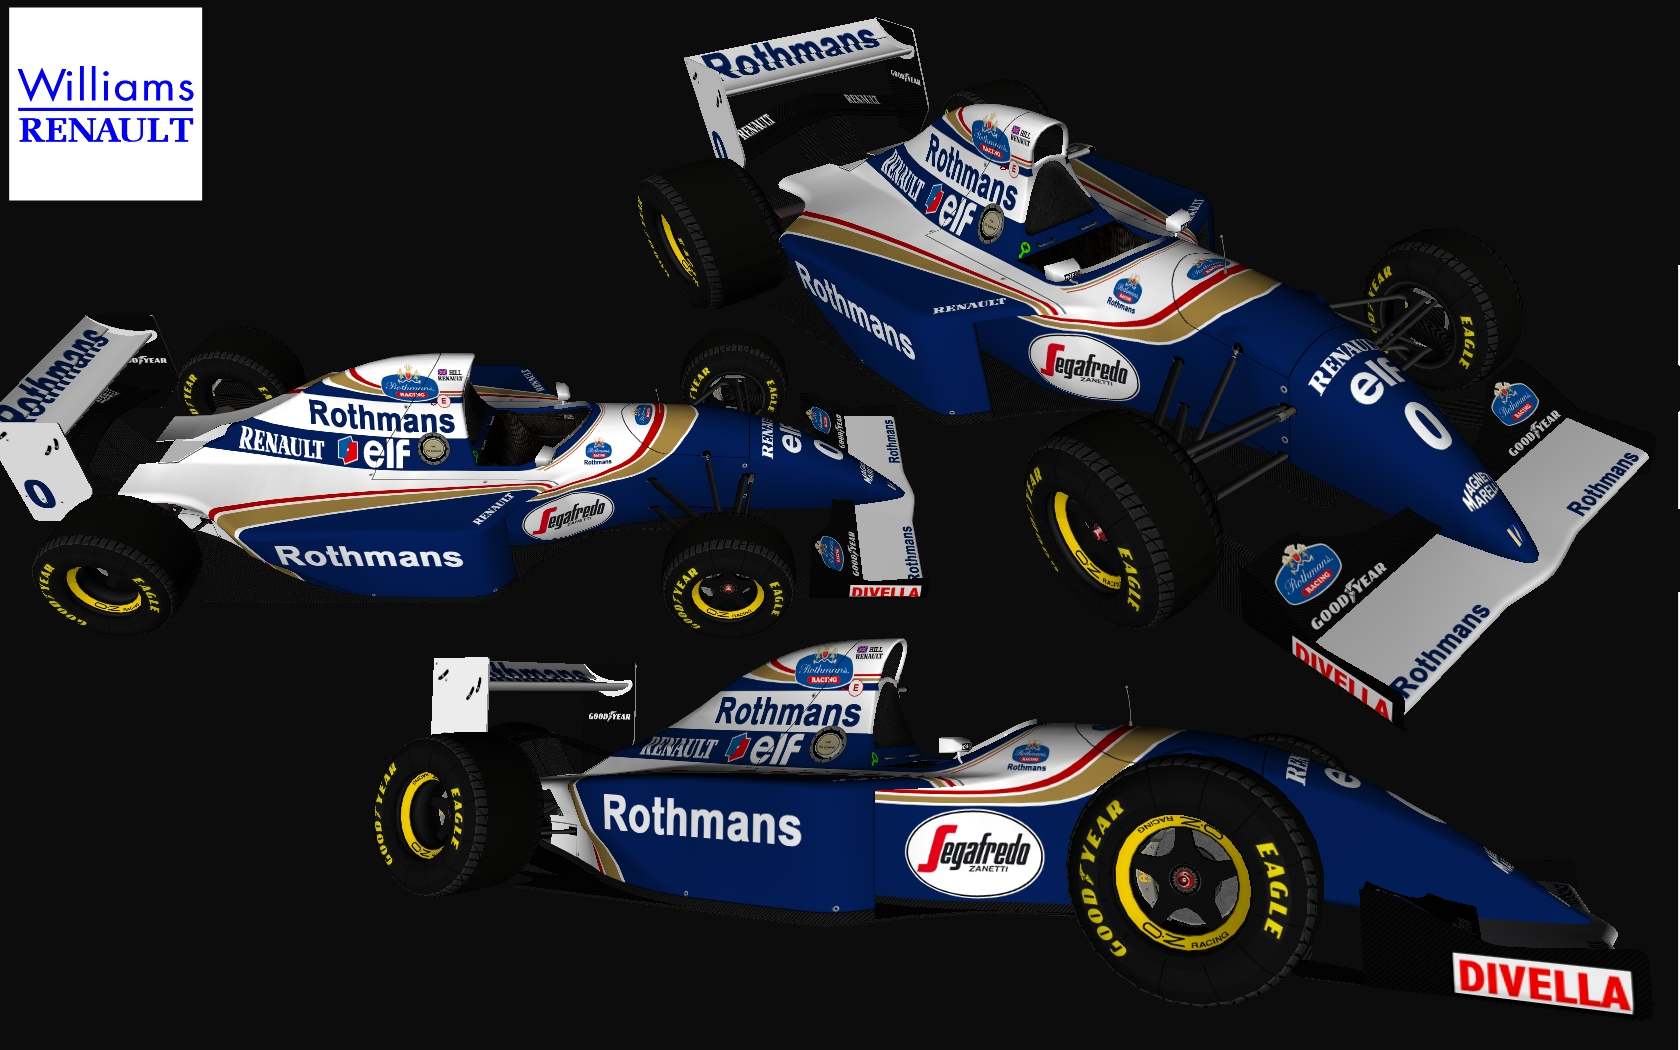 94williams5.jpg